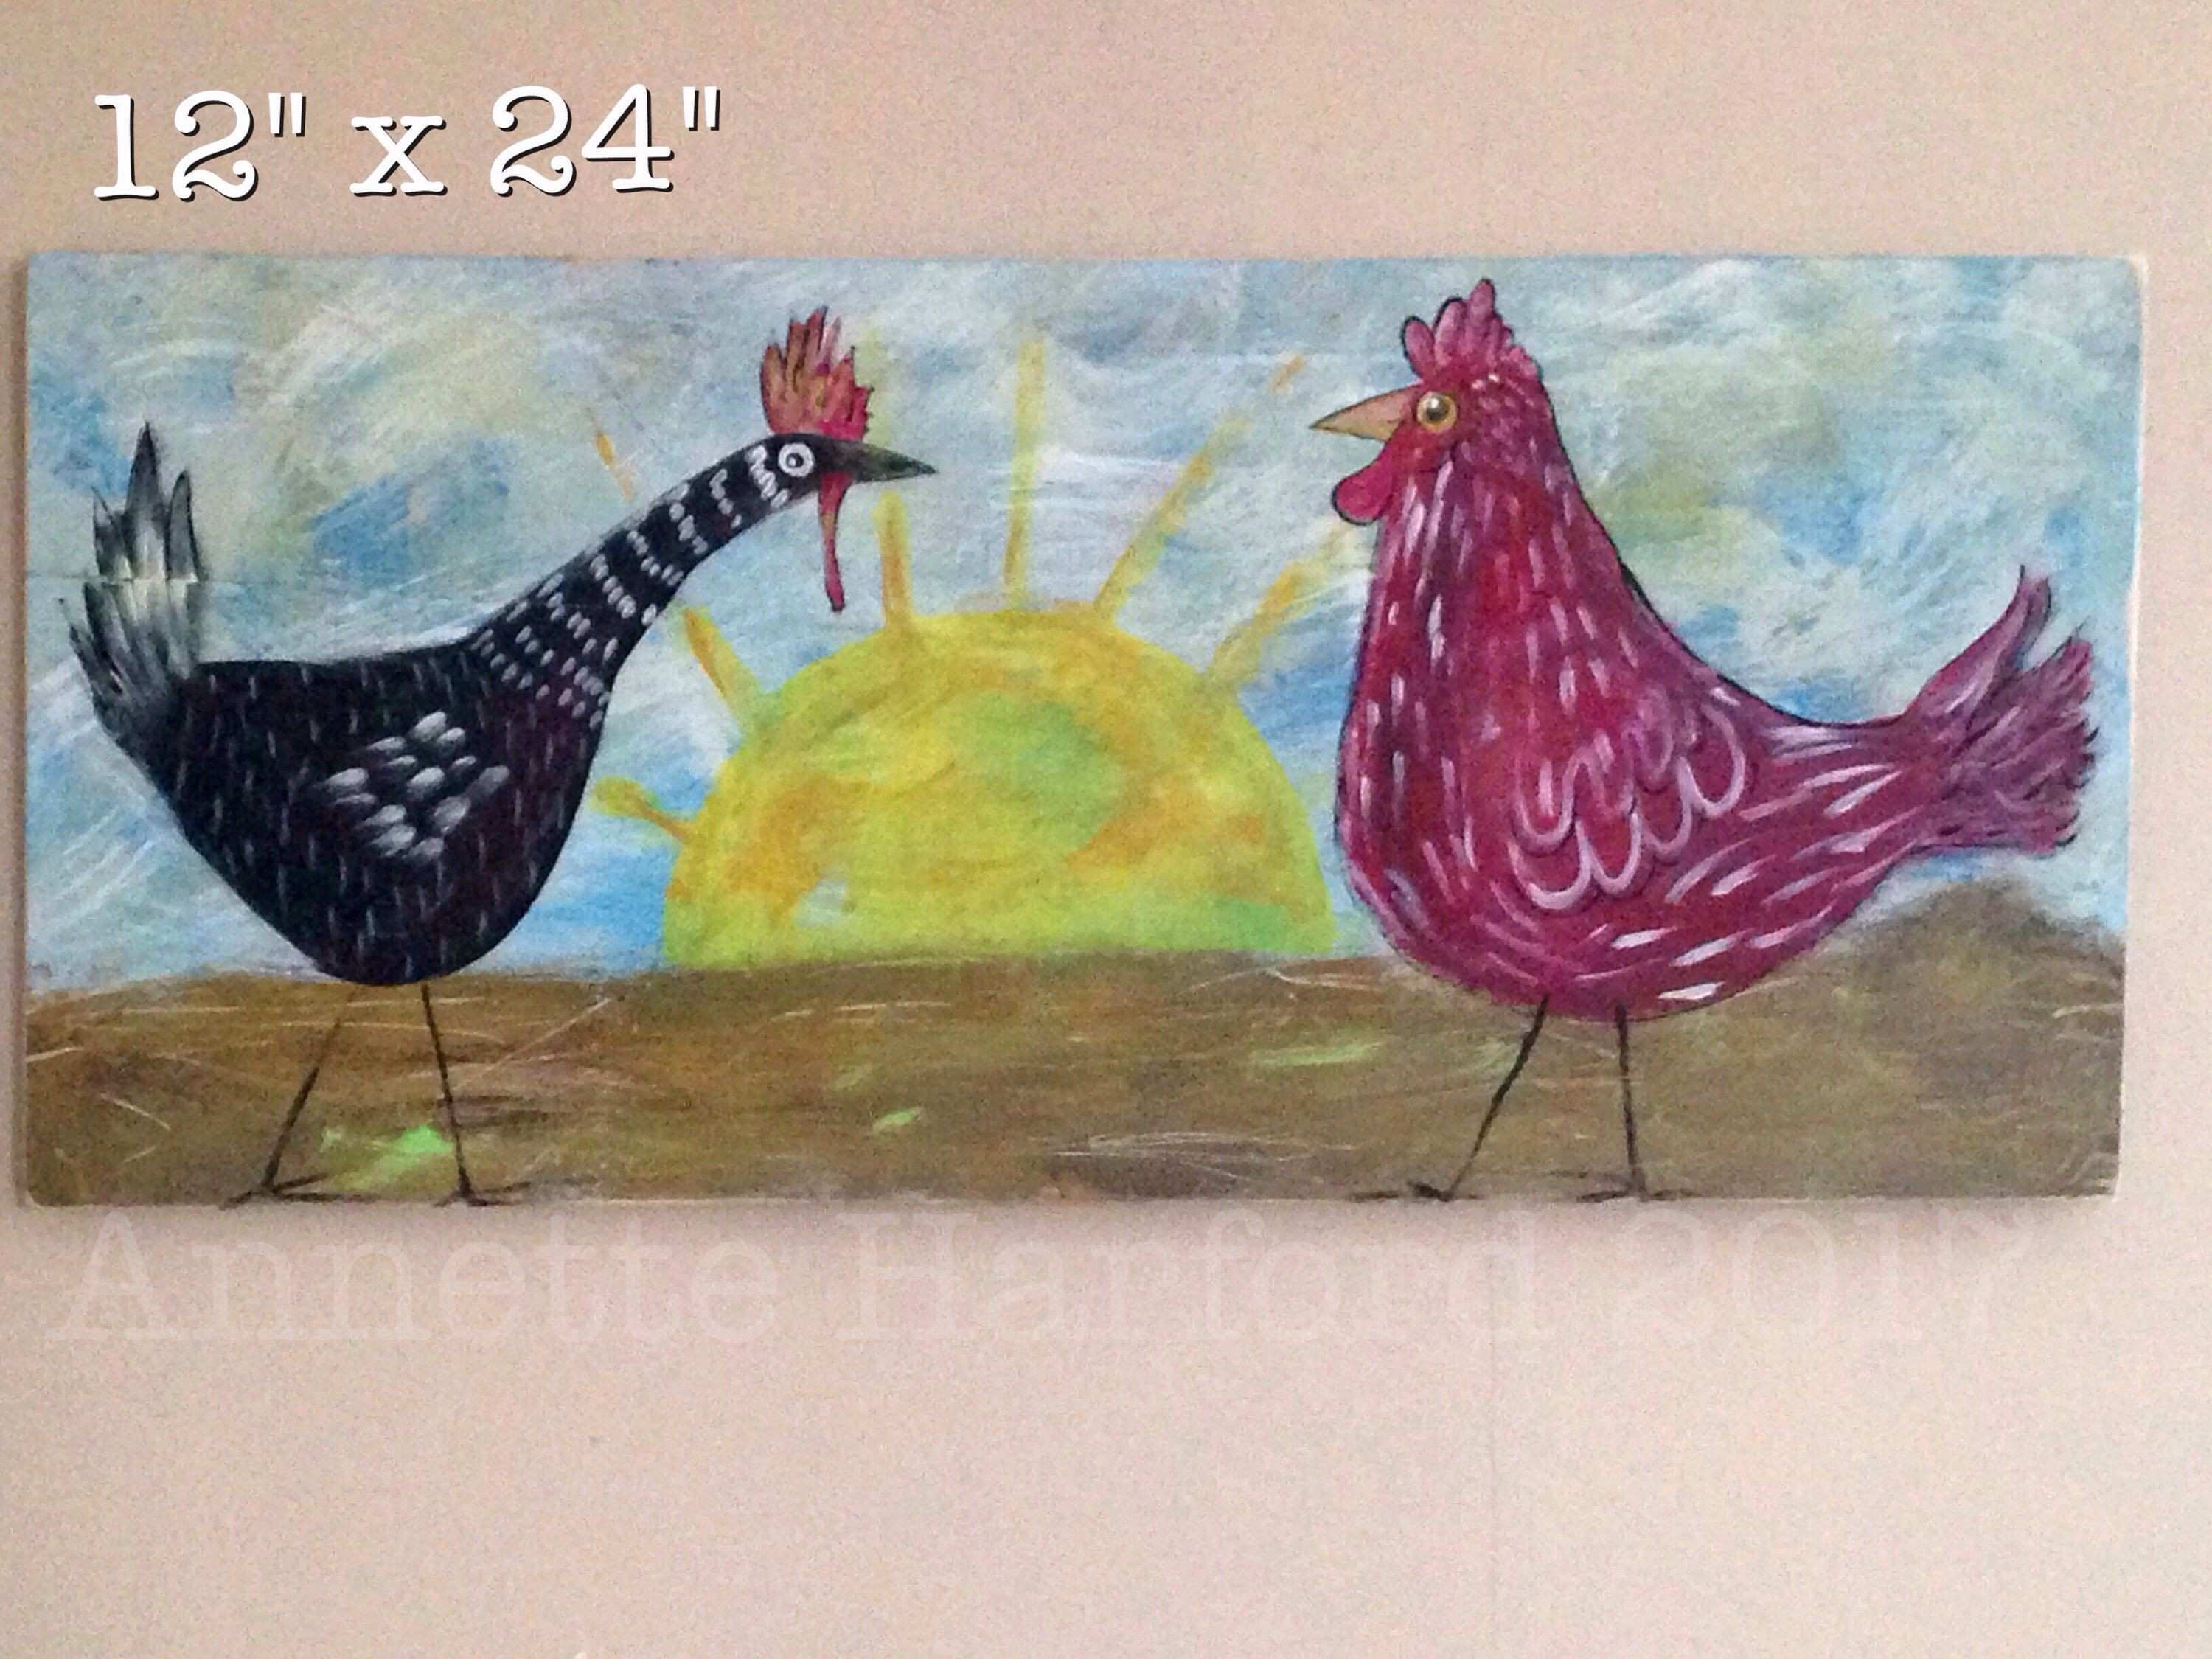 Chicken and rooster sunrise wall art farmhouse decor painting